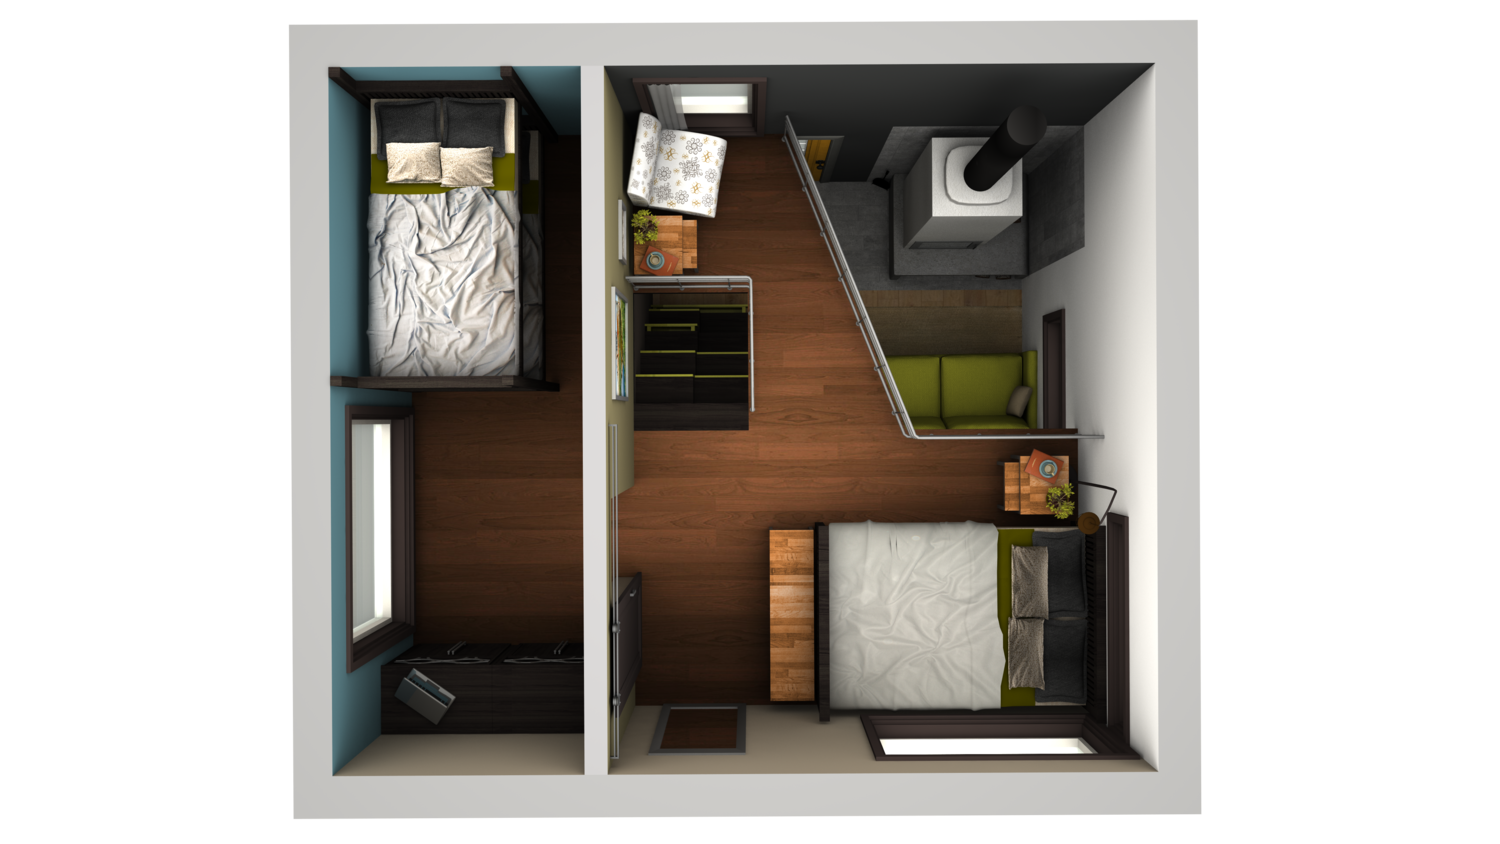 3D Renders of a design I dreamt up yesterday! — The Tiny Tack House